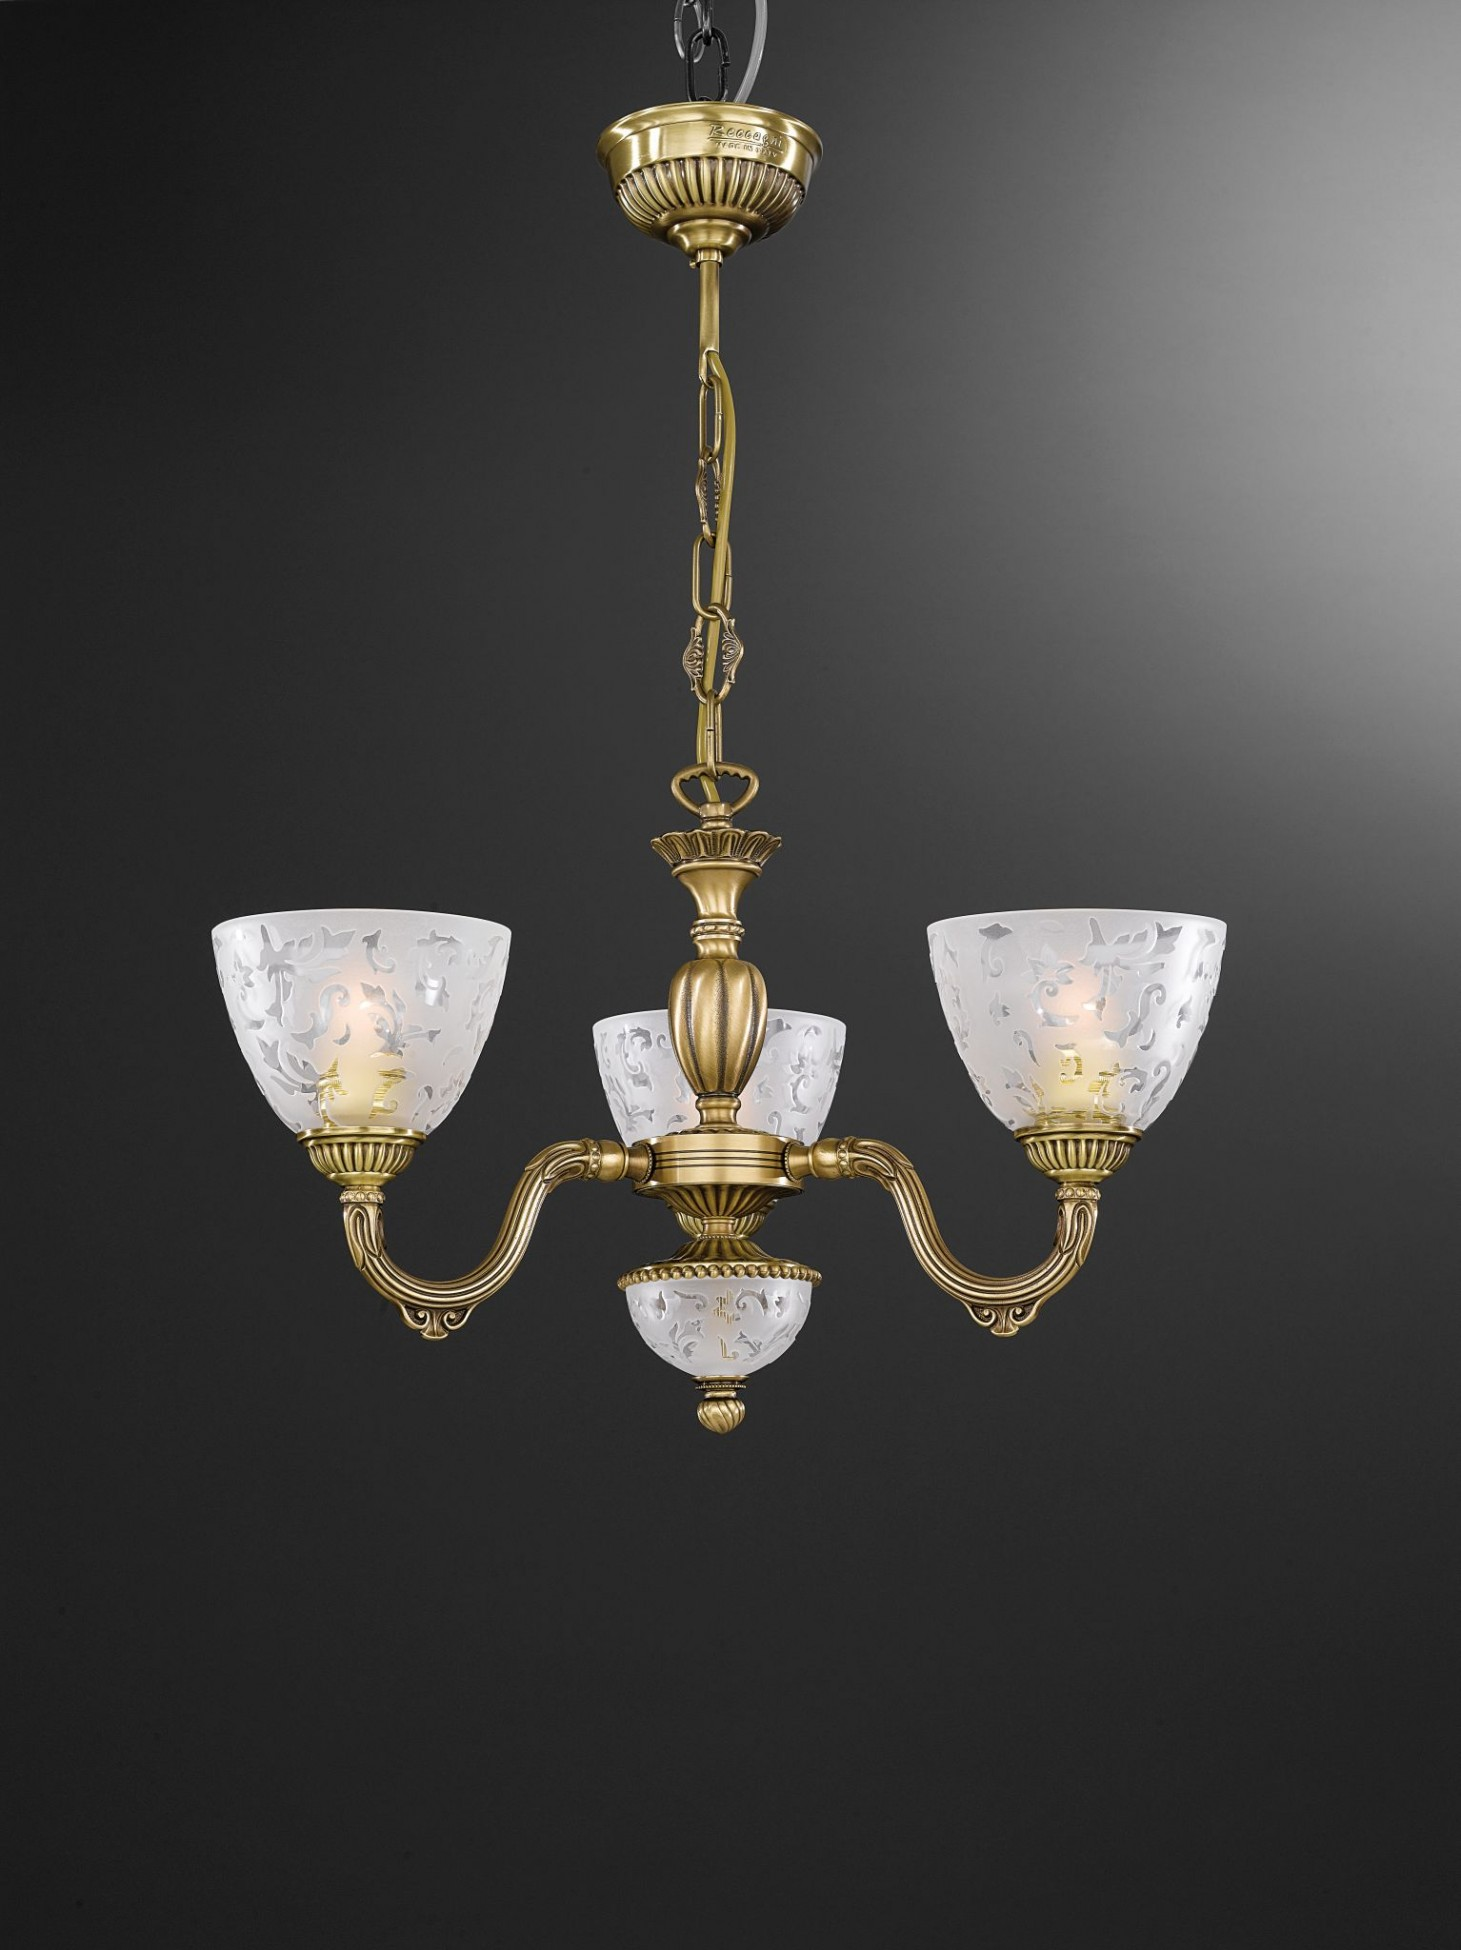 3 light brass chandelier with frosted glasses facing upward reccagni store - Can light chandelier ...